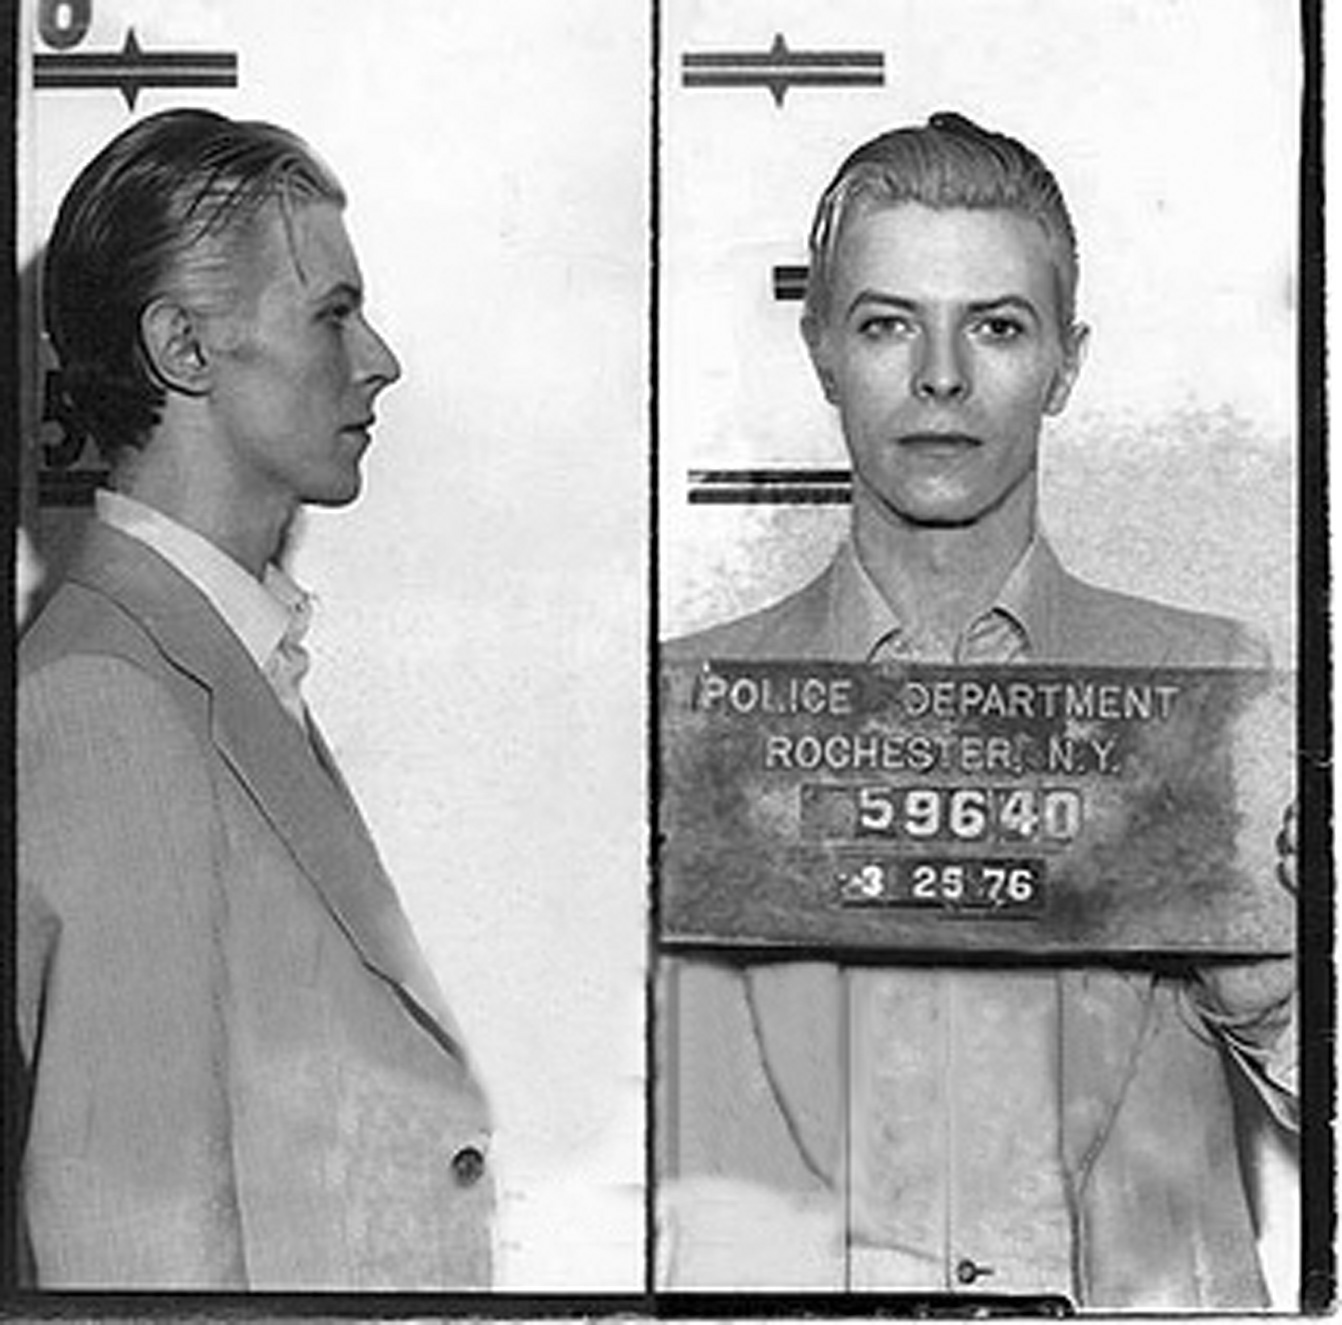 David Bowie performed in Rochester, New York in 1976 and was arrested for pot possesion after the show.